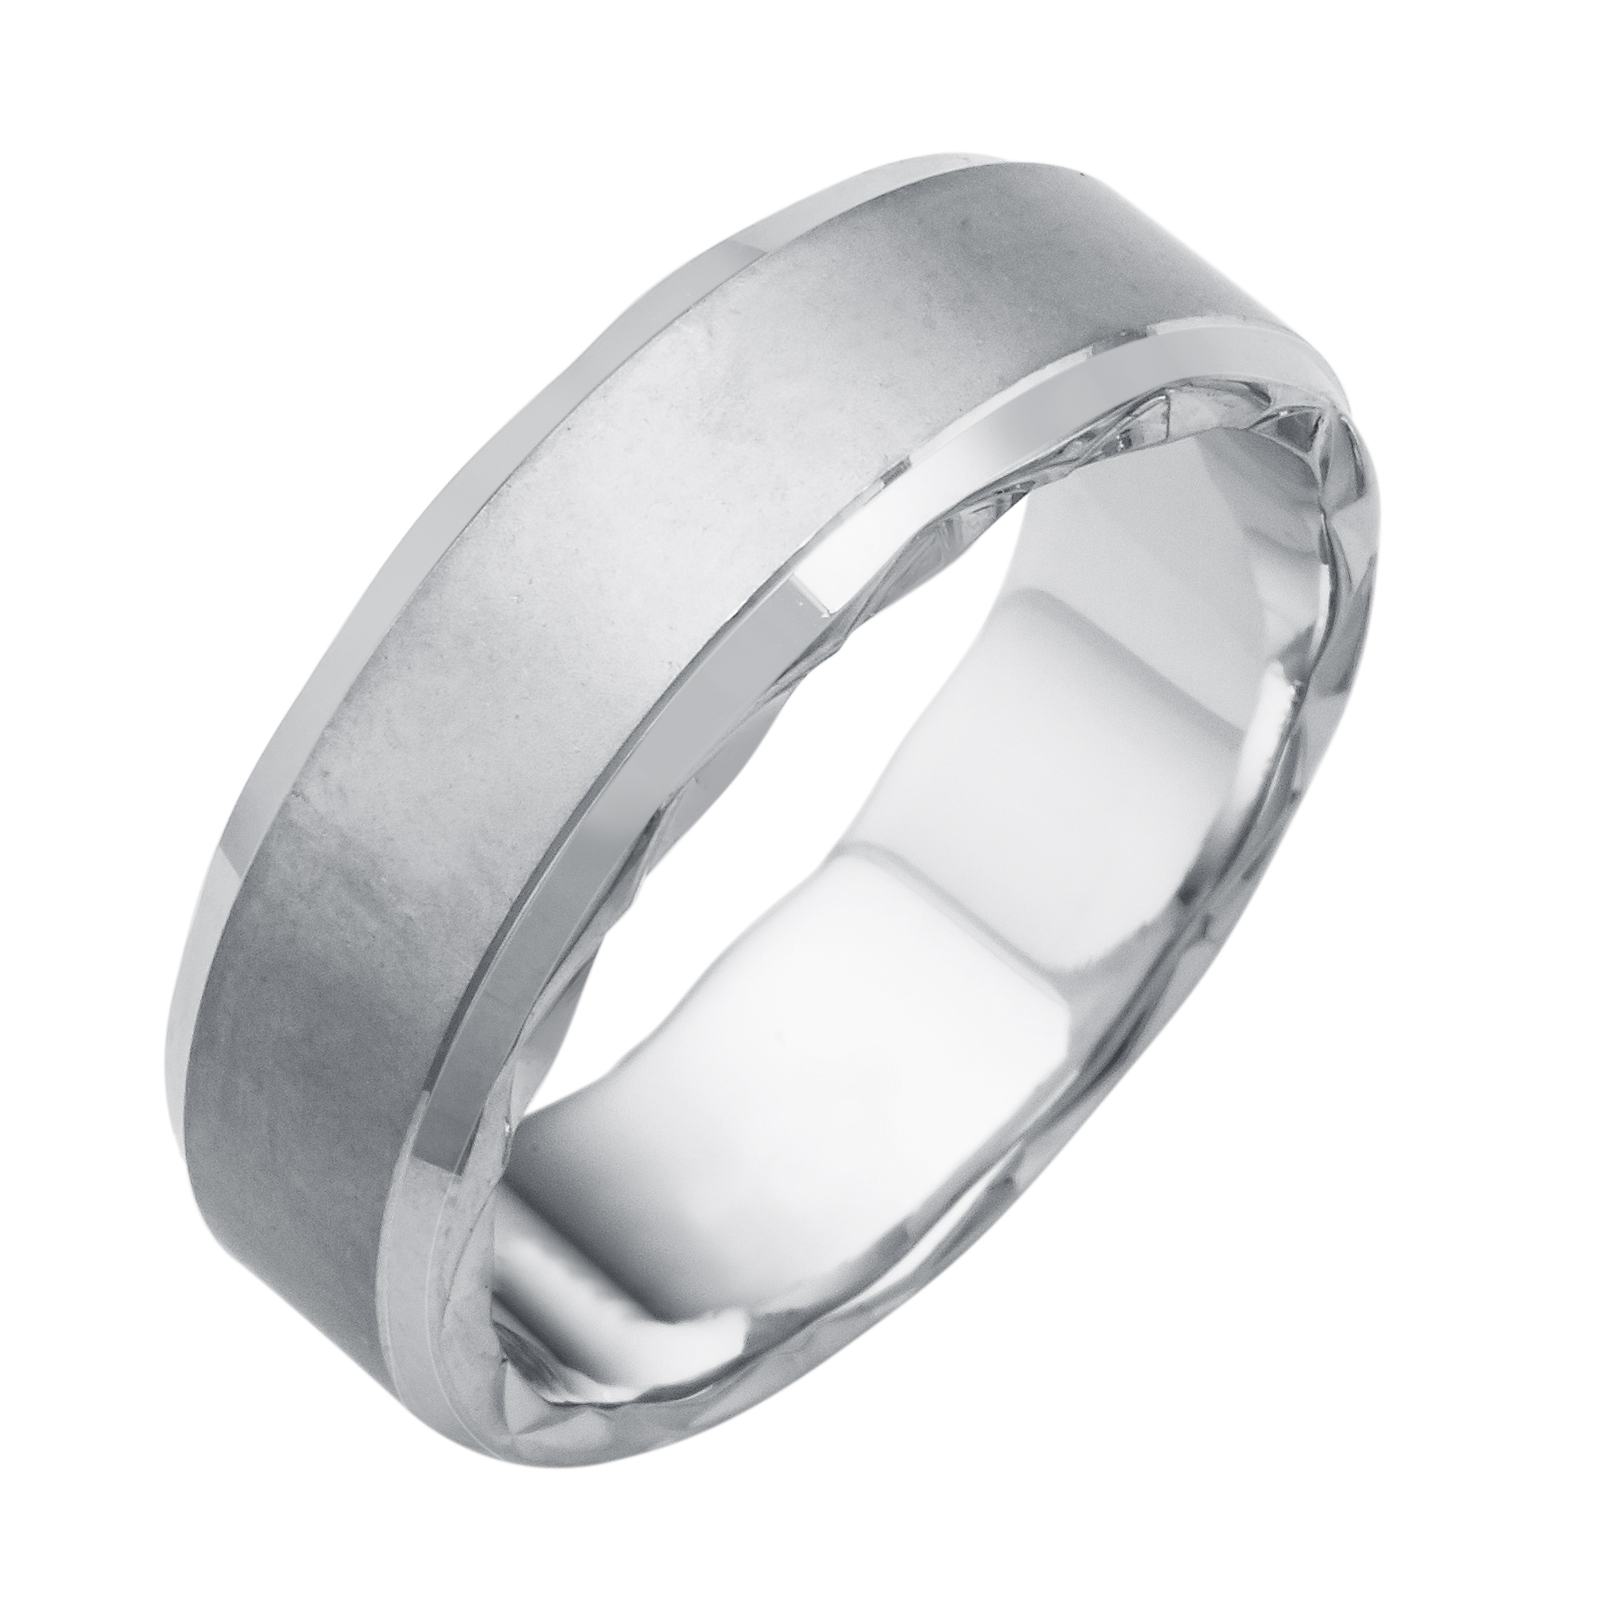 rose matching wedding products jewellery man rings mens silver band brushed ring black tungsten carbide gold anniversary